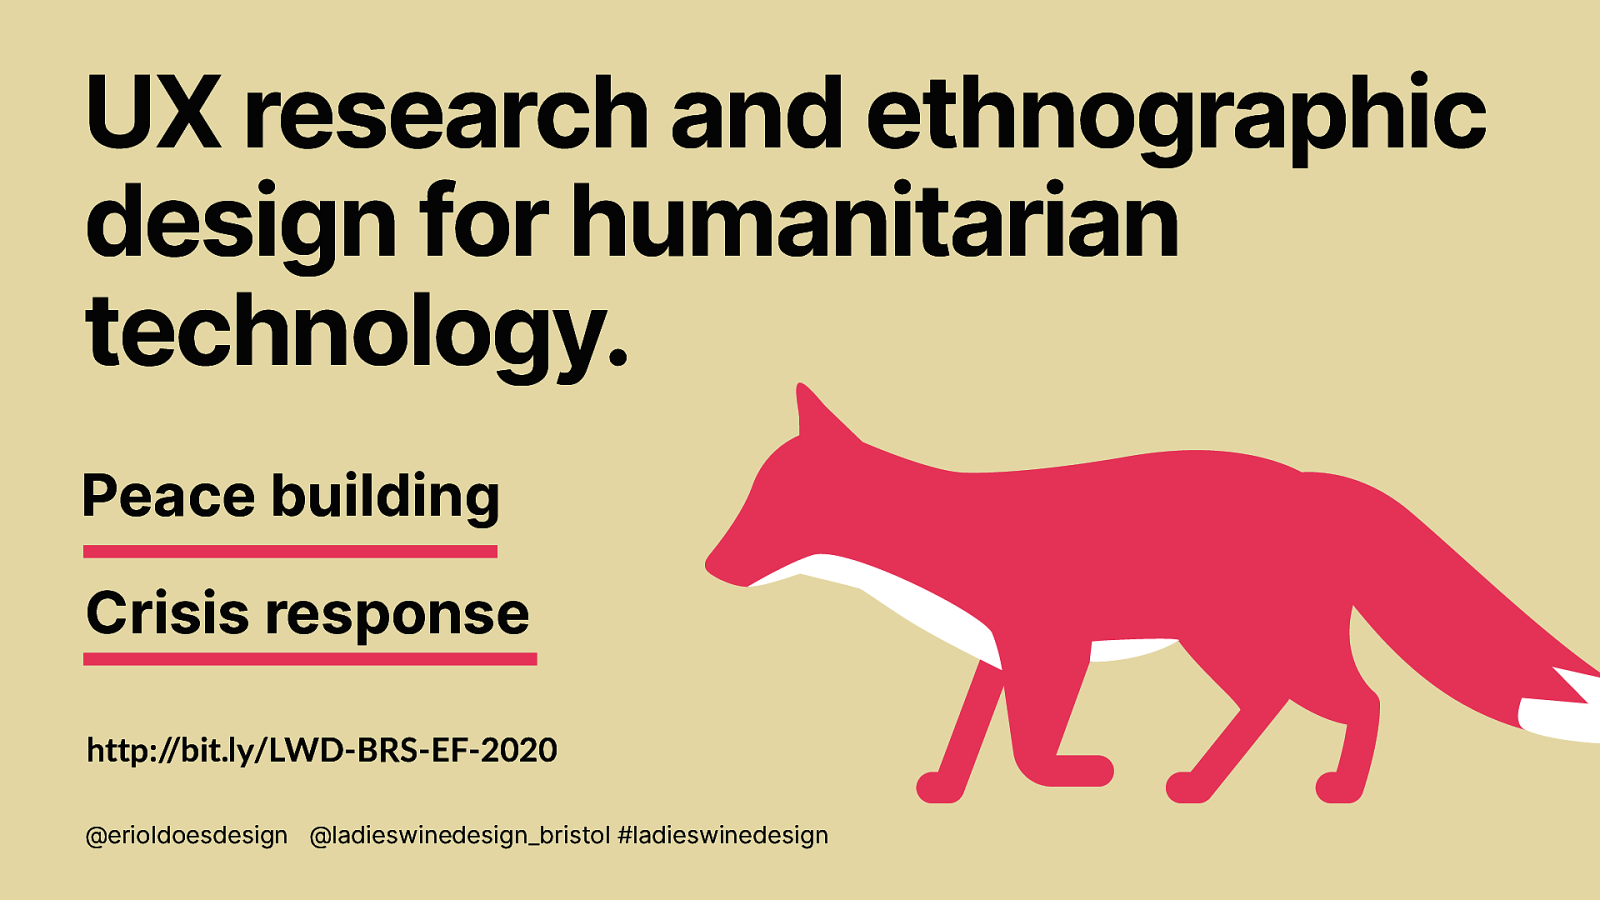 UX research and ethnographic design for humanitarian technology